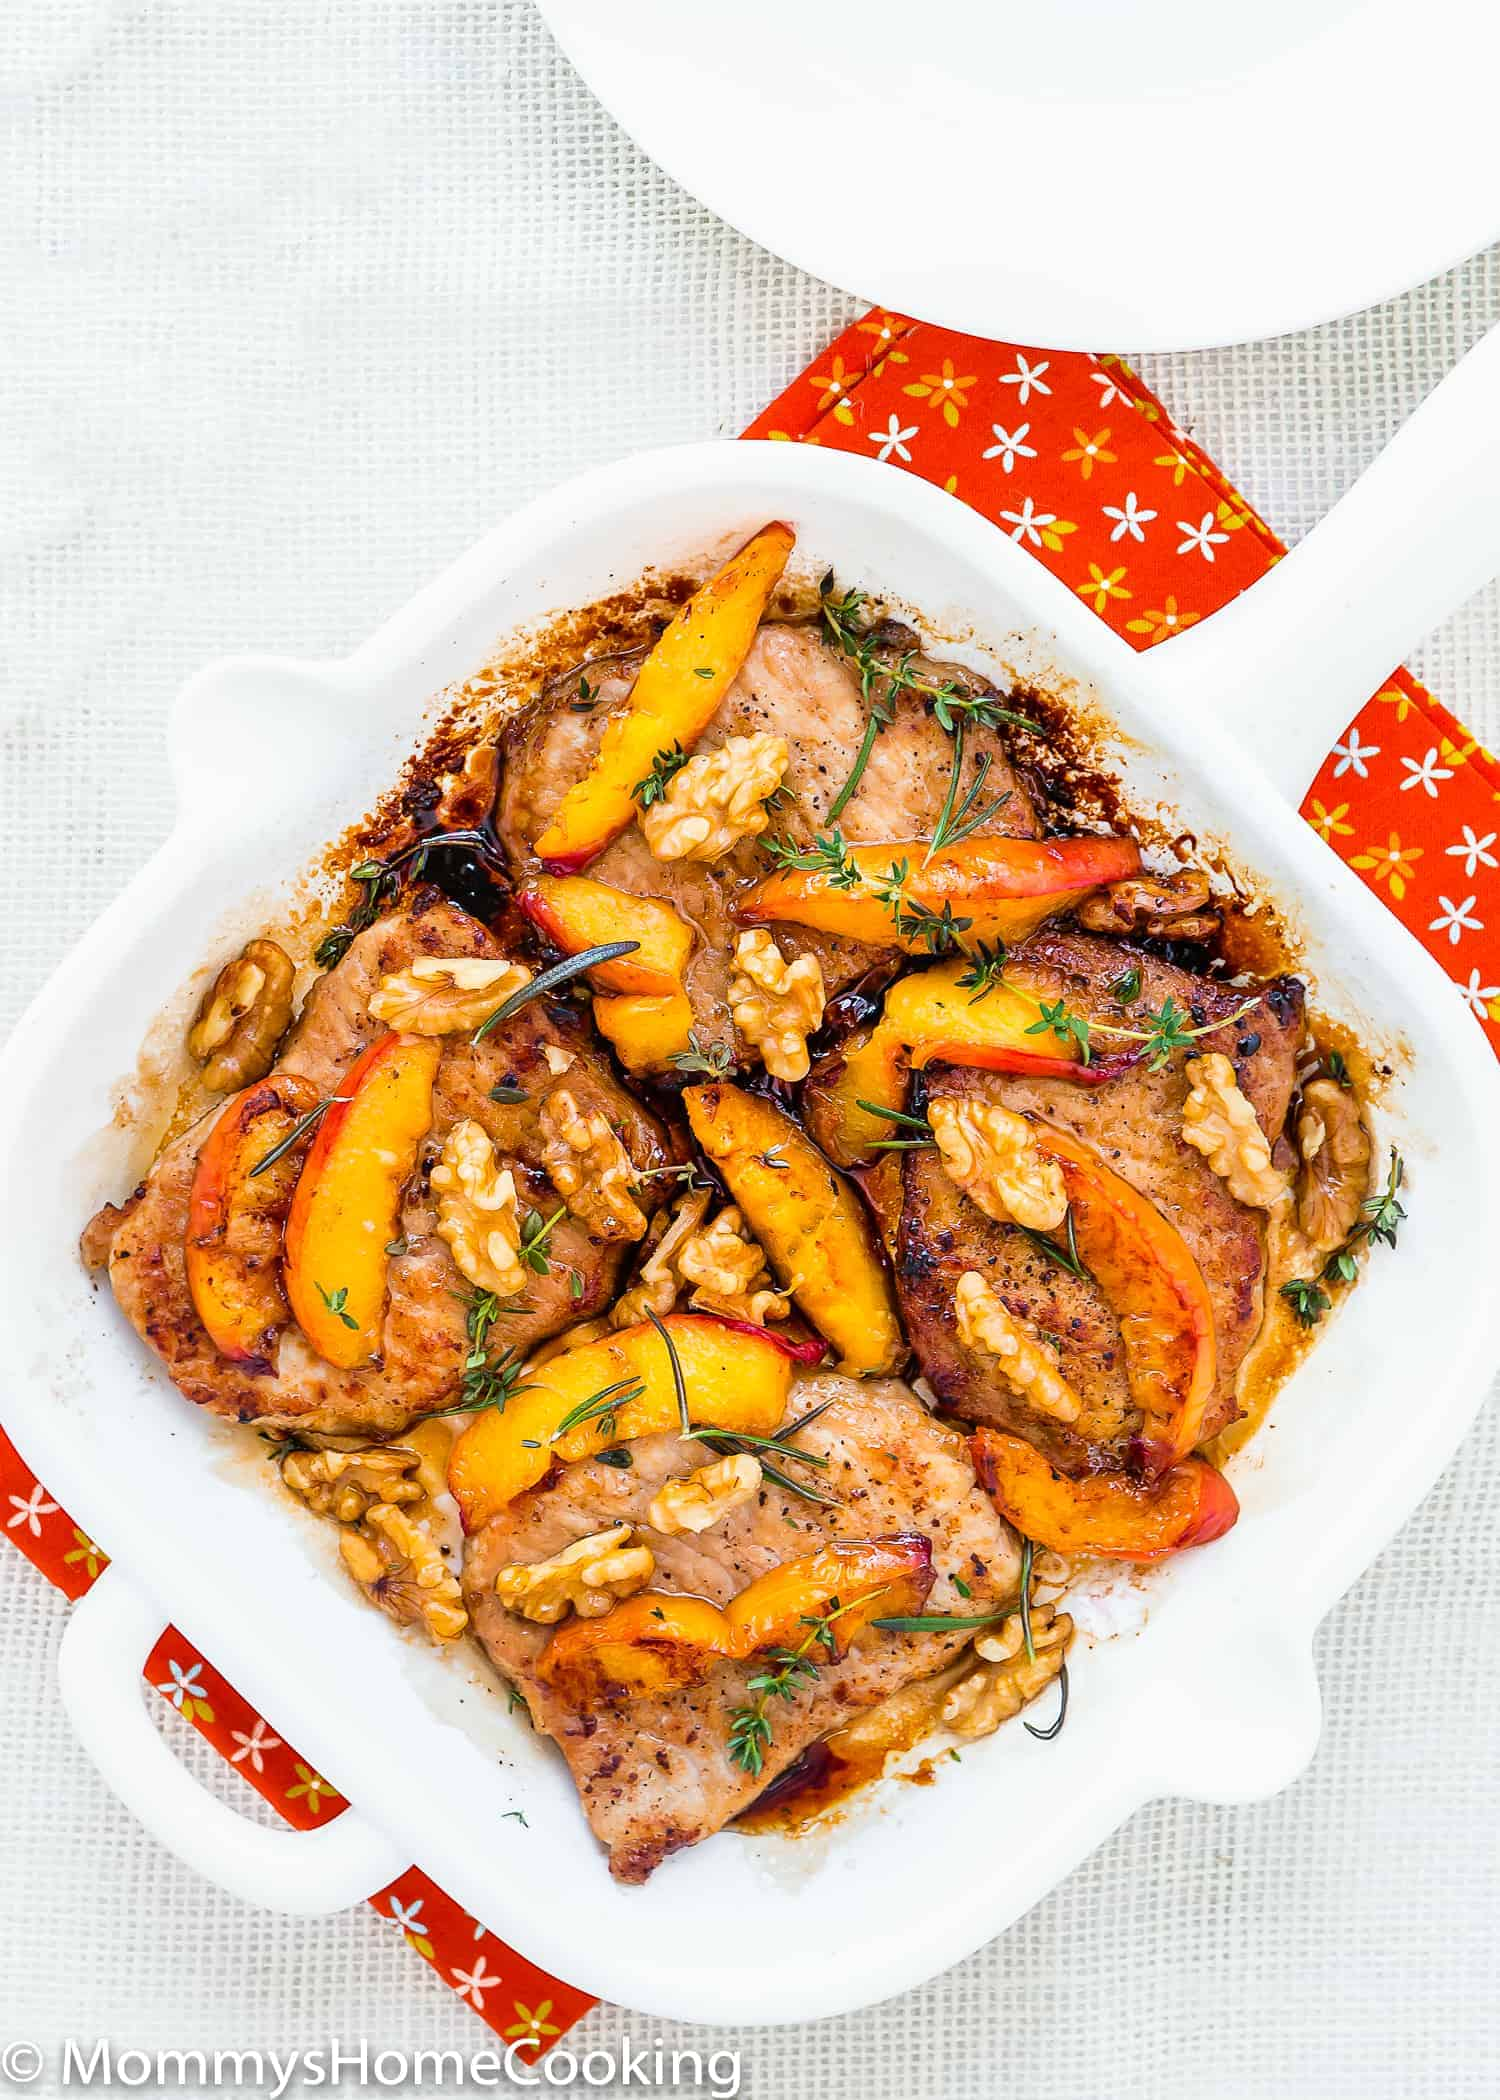 These Grilled Pork Chops with Peaches and Walnuts are the easiest and most amazing pork chops ever…ready in 20 minutes! It doesn't get better than that. Just peachy! http://mommyshomecooking.com